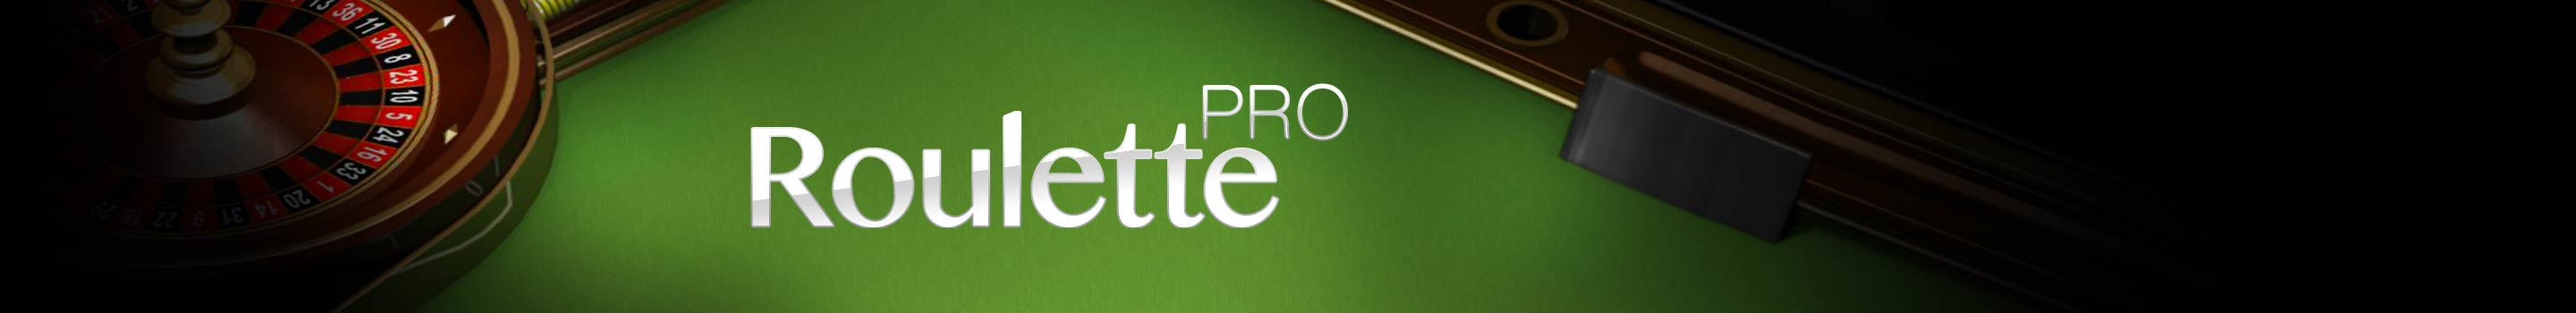 Roulette (professional series)